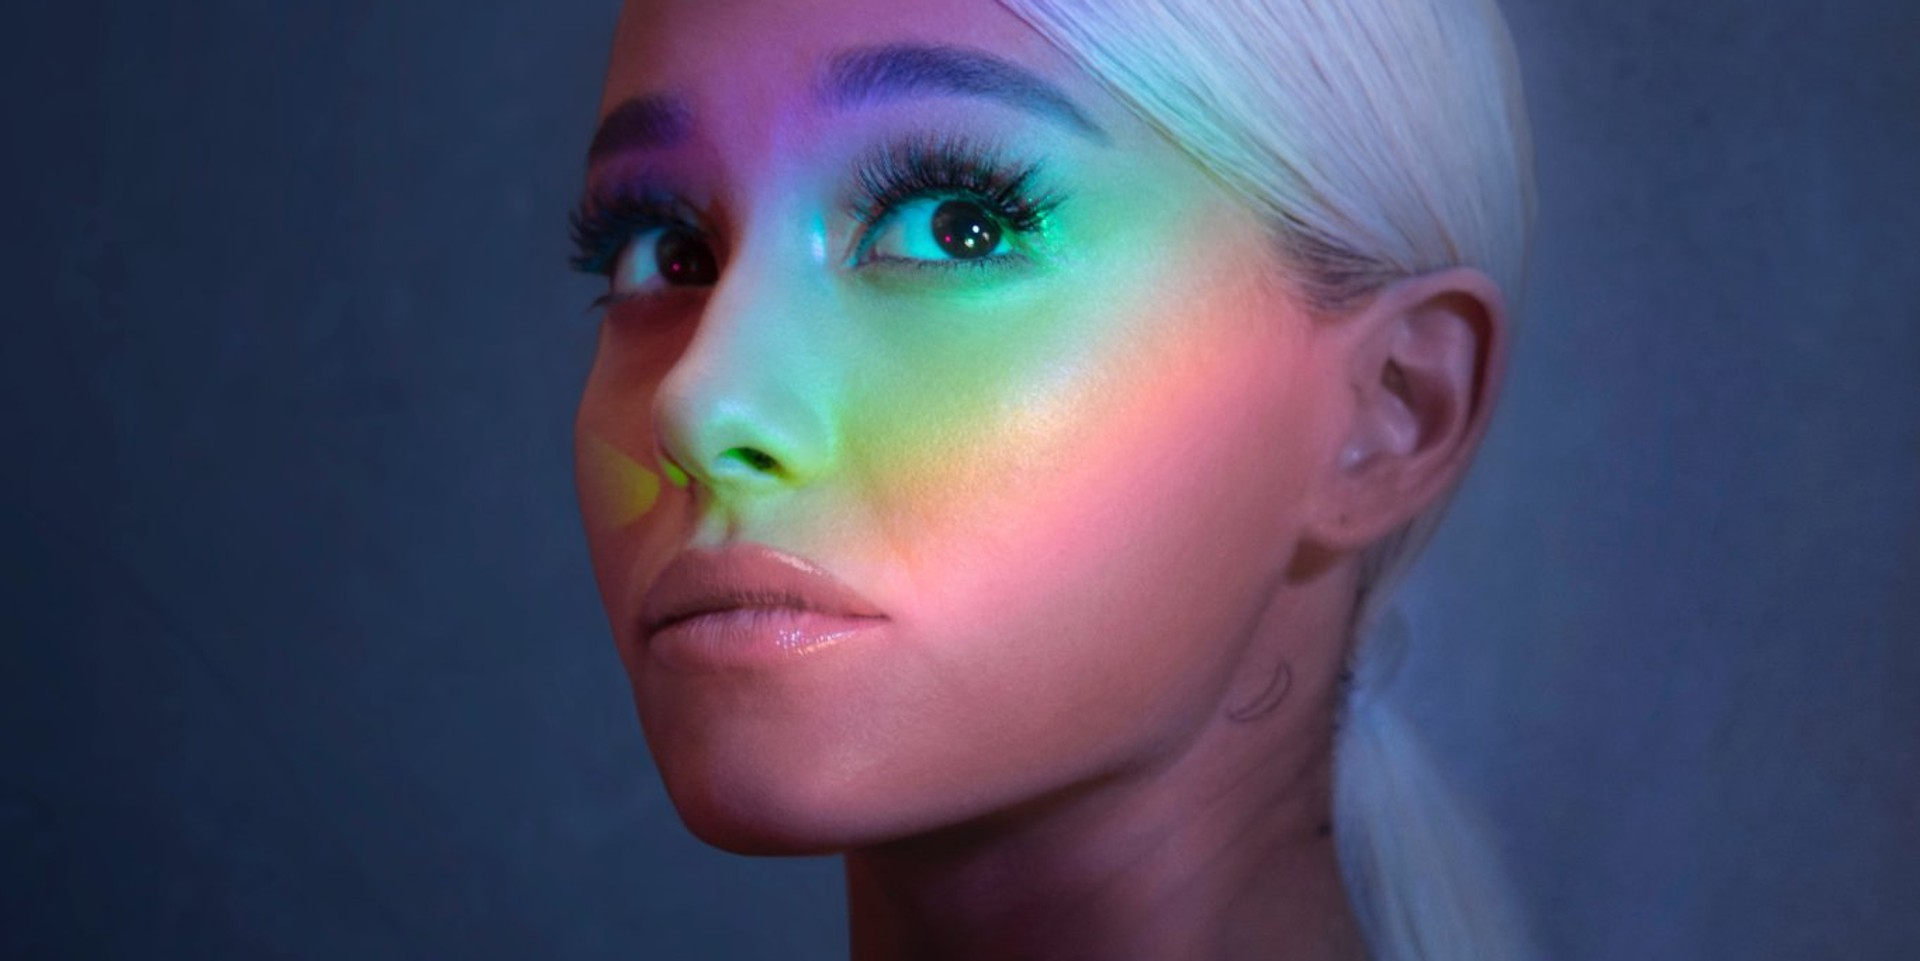 Ariana Grande returns with dizzying video for new single 'No Tears Left To Cry' –watch